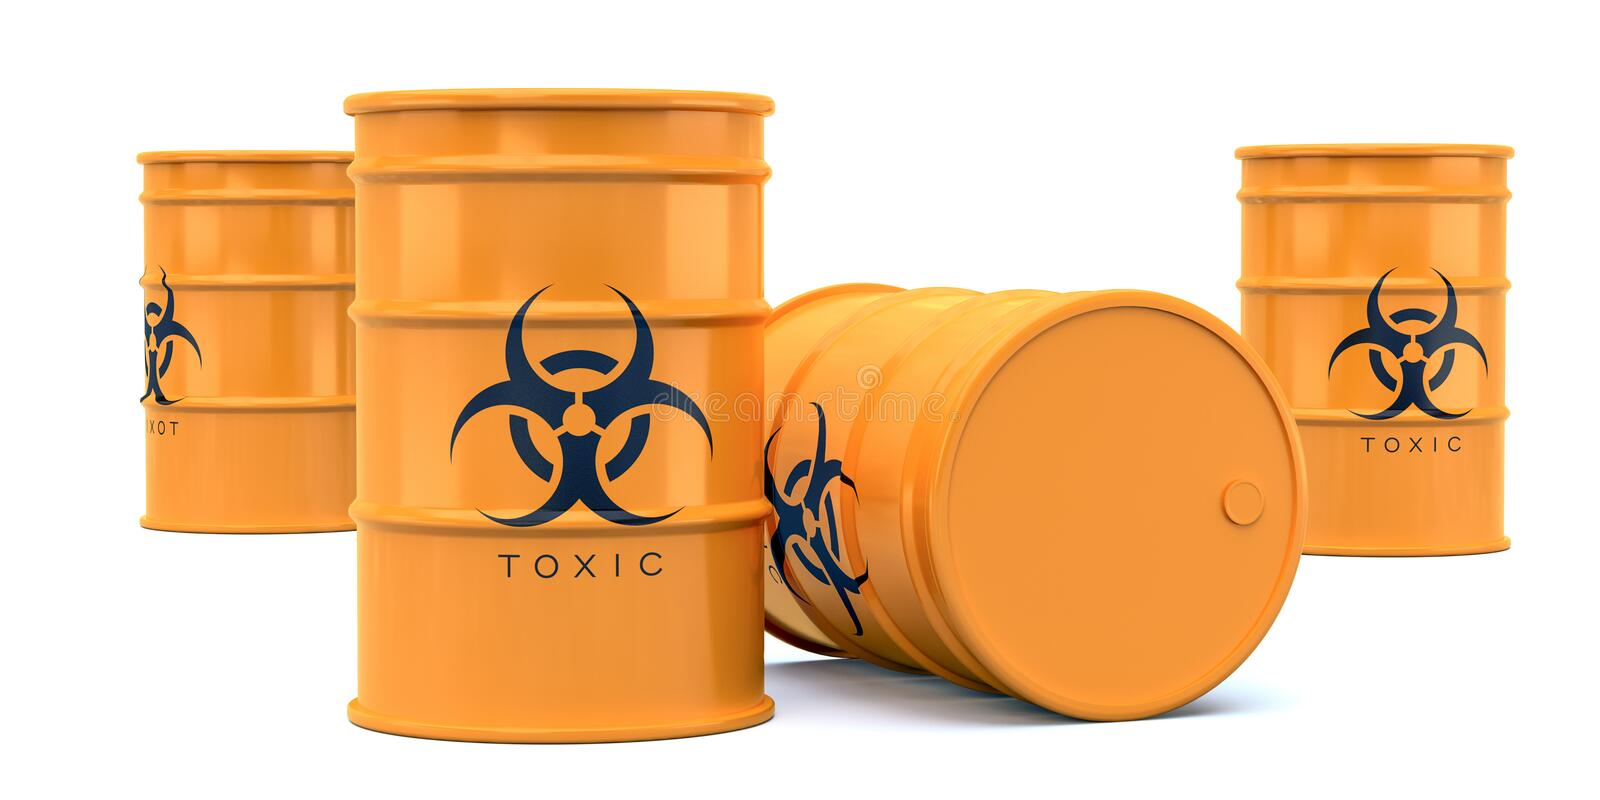 Yellow biohazard toxic waste barrels isolated on white background. realistic 3d render royalty free illustration